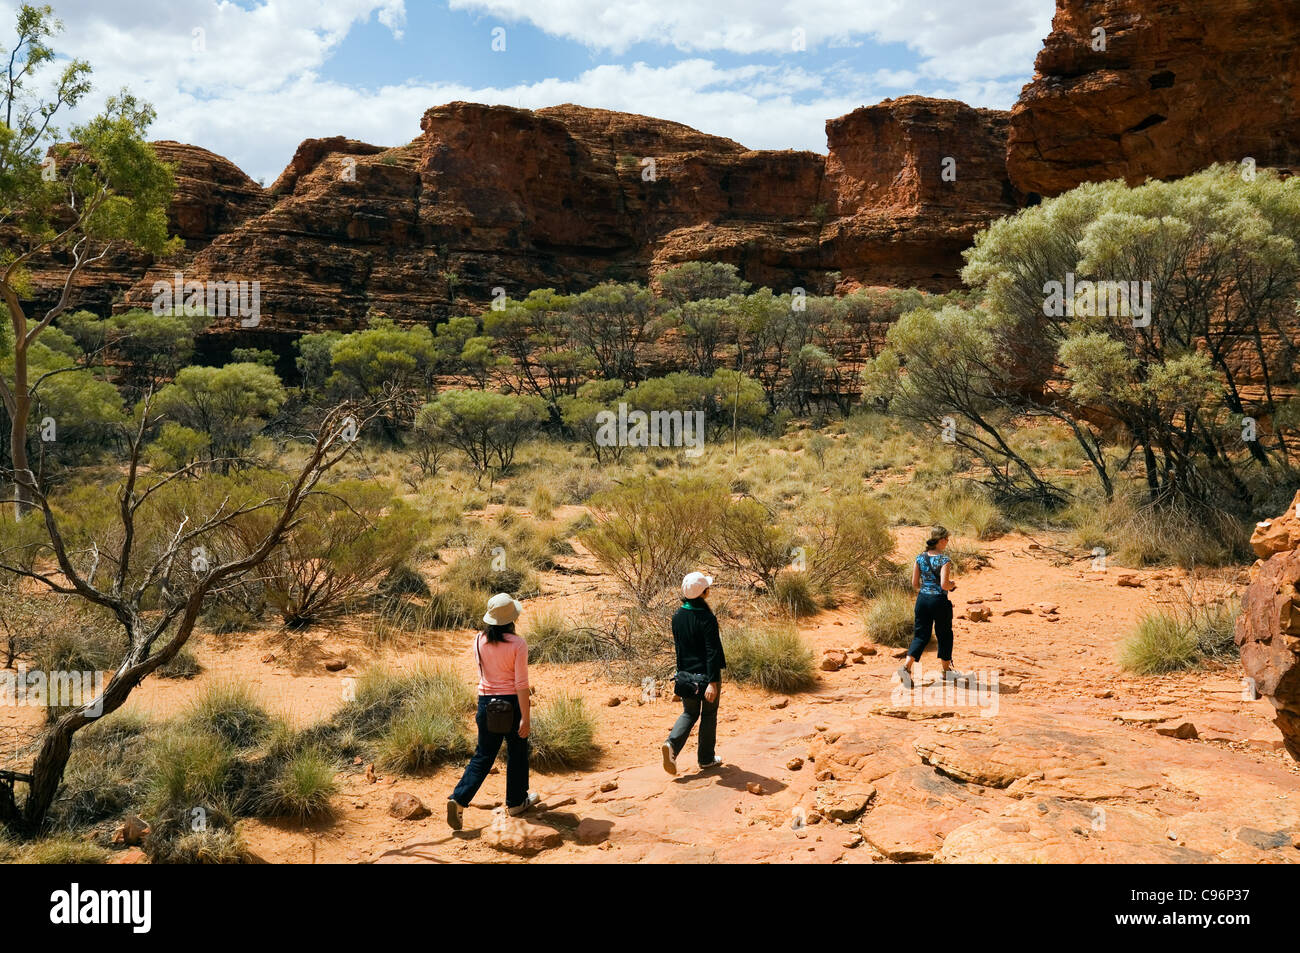 Tourists on the Kings Canyon walk. Watarrka (Kings Canyon) National Park, Northern Territory, Australia - Stock Image